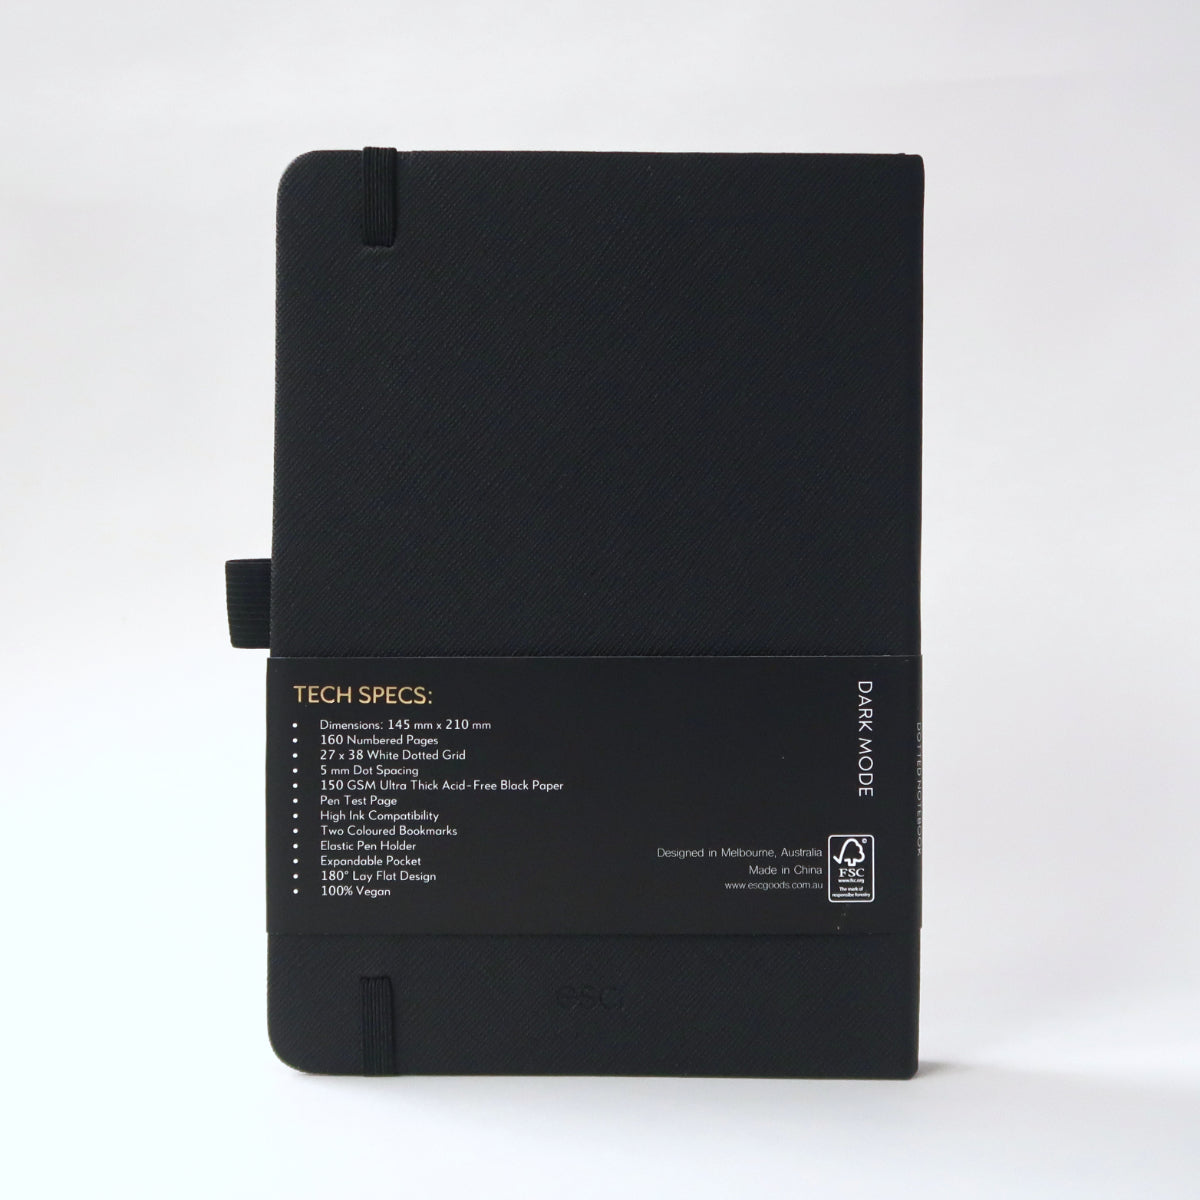 Esc. Goods Dark Mode Notebook Back Cover. A5, 150 gsm, black paper, high ink compatibility. Saffiano Leather.